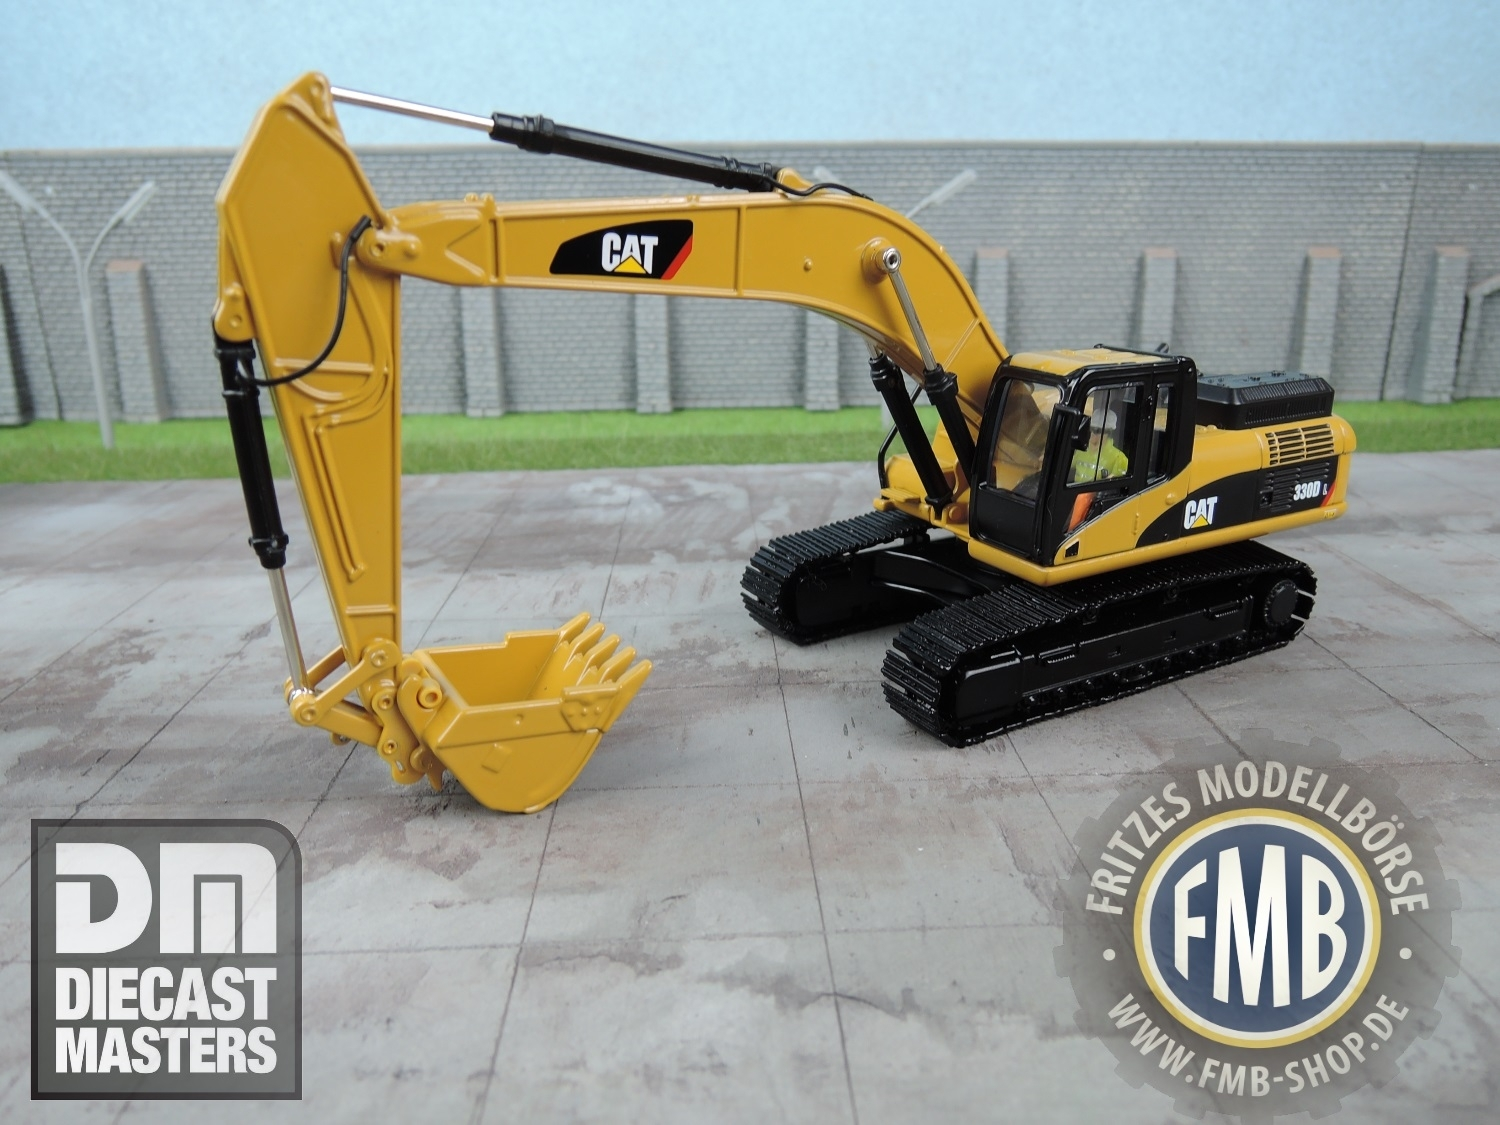 hight resolution of preview 85199 diecast masters cat 330d l kettenbagger